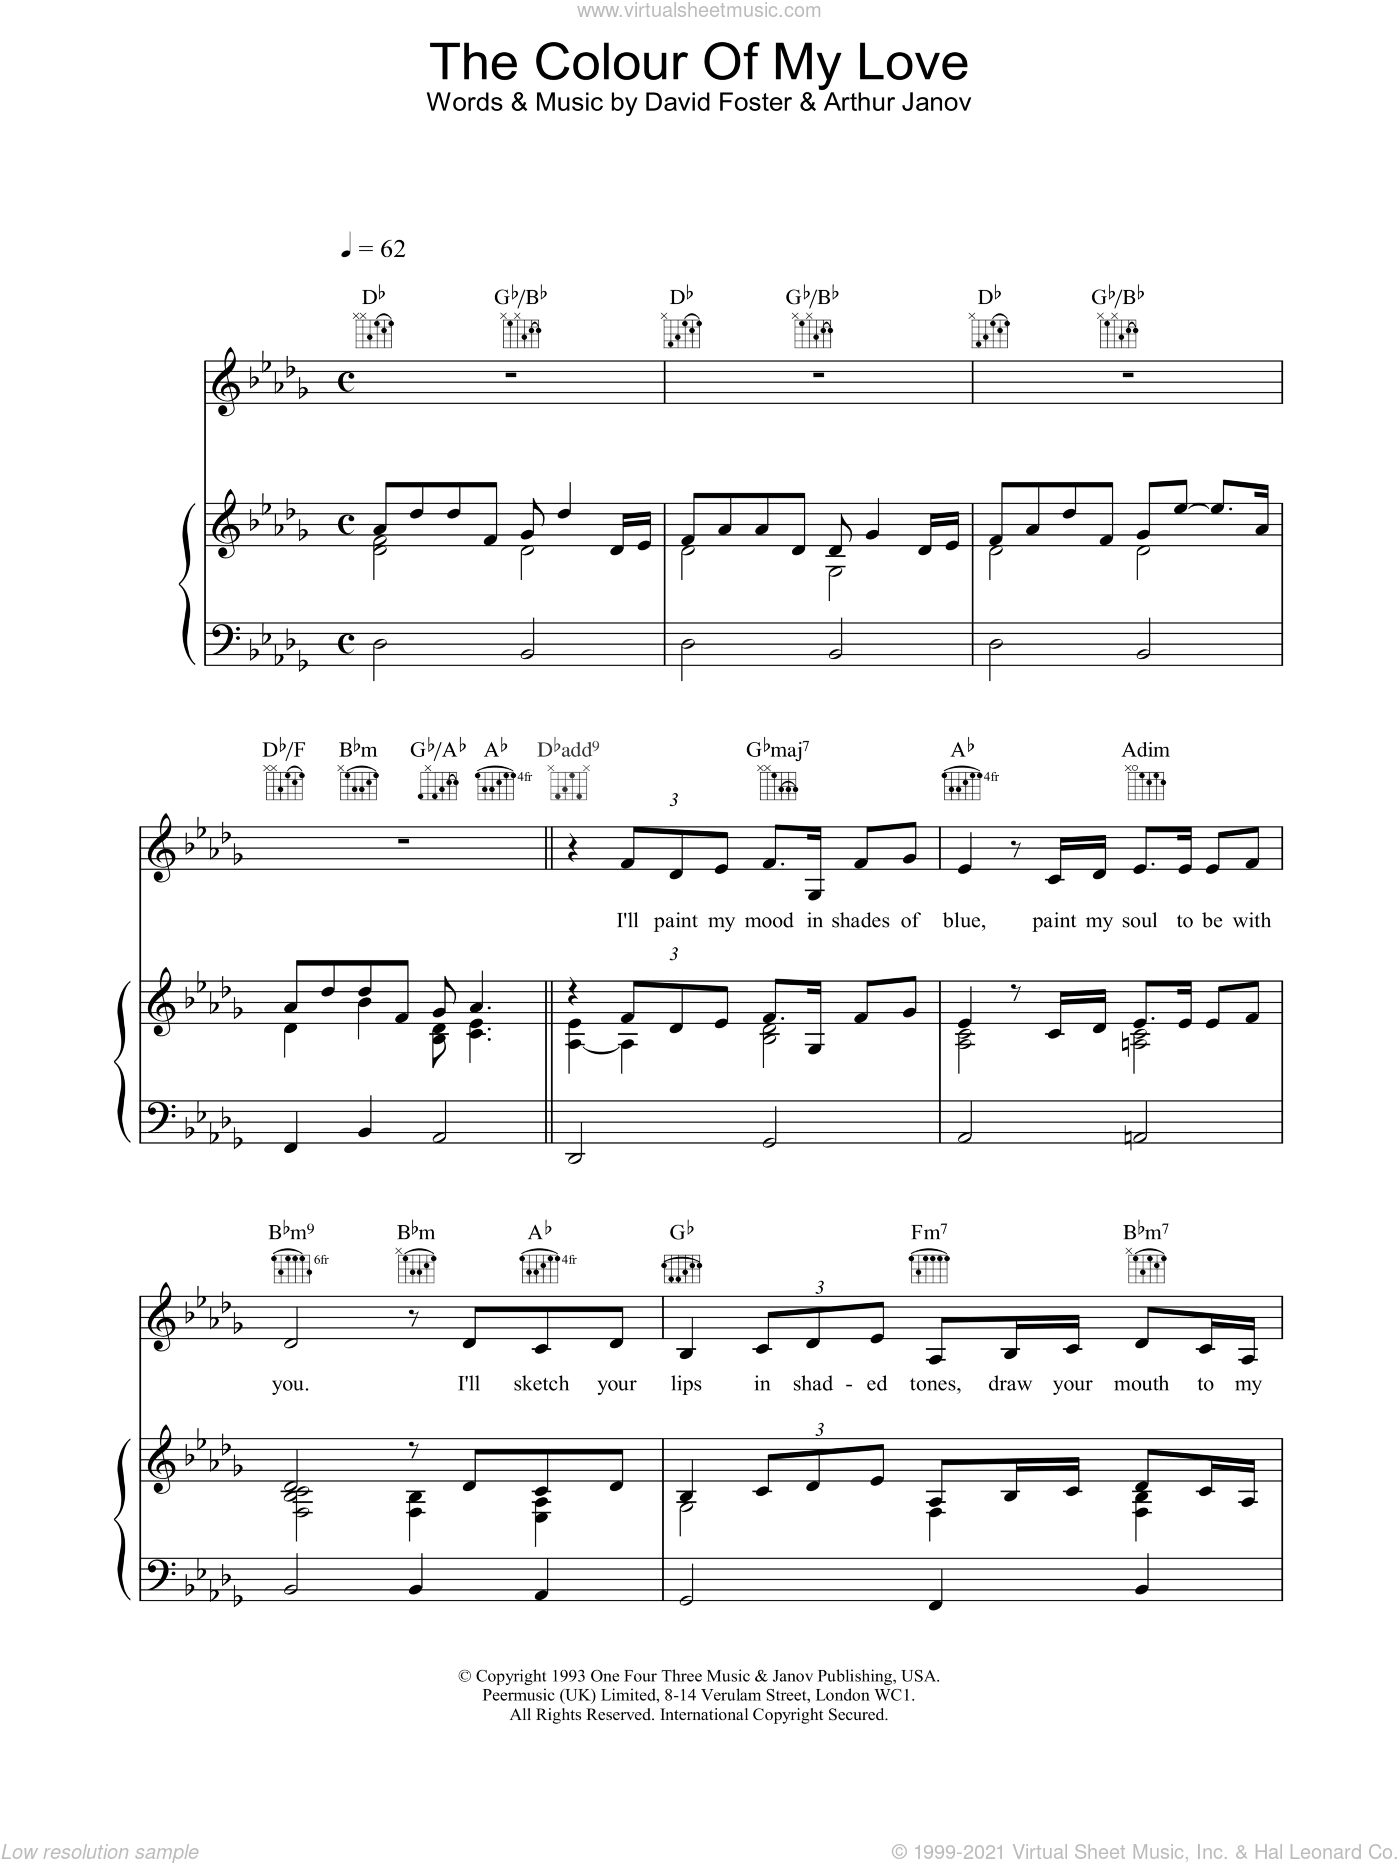 The Colour Of My Love sheet music for voice, piano or guitar by Celine Dion and David Foster